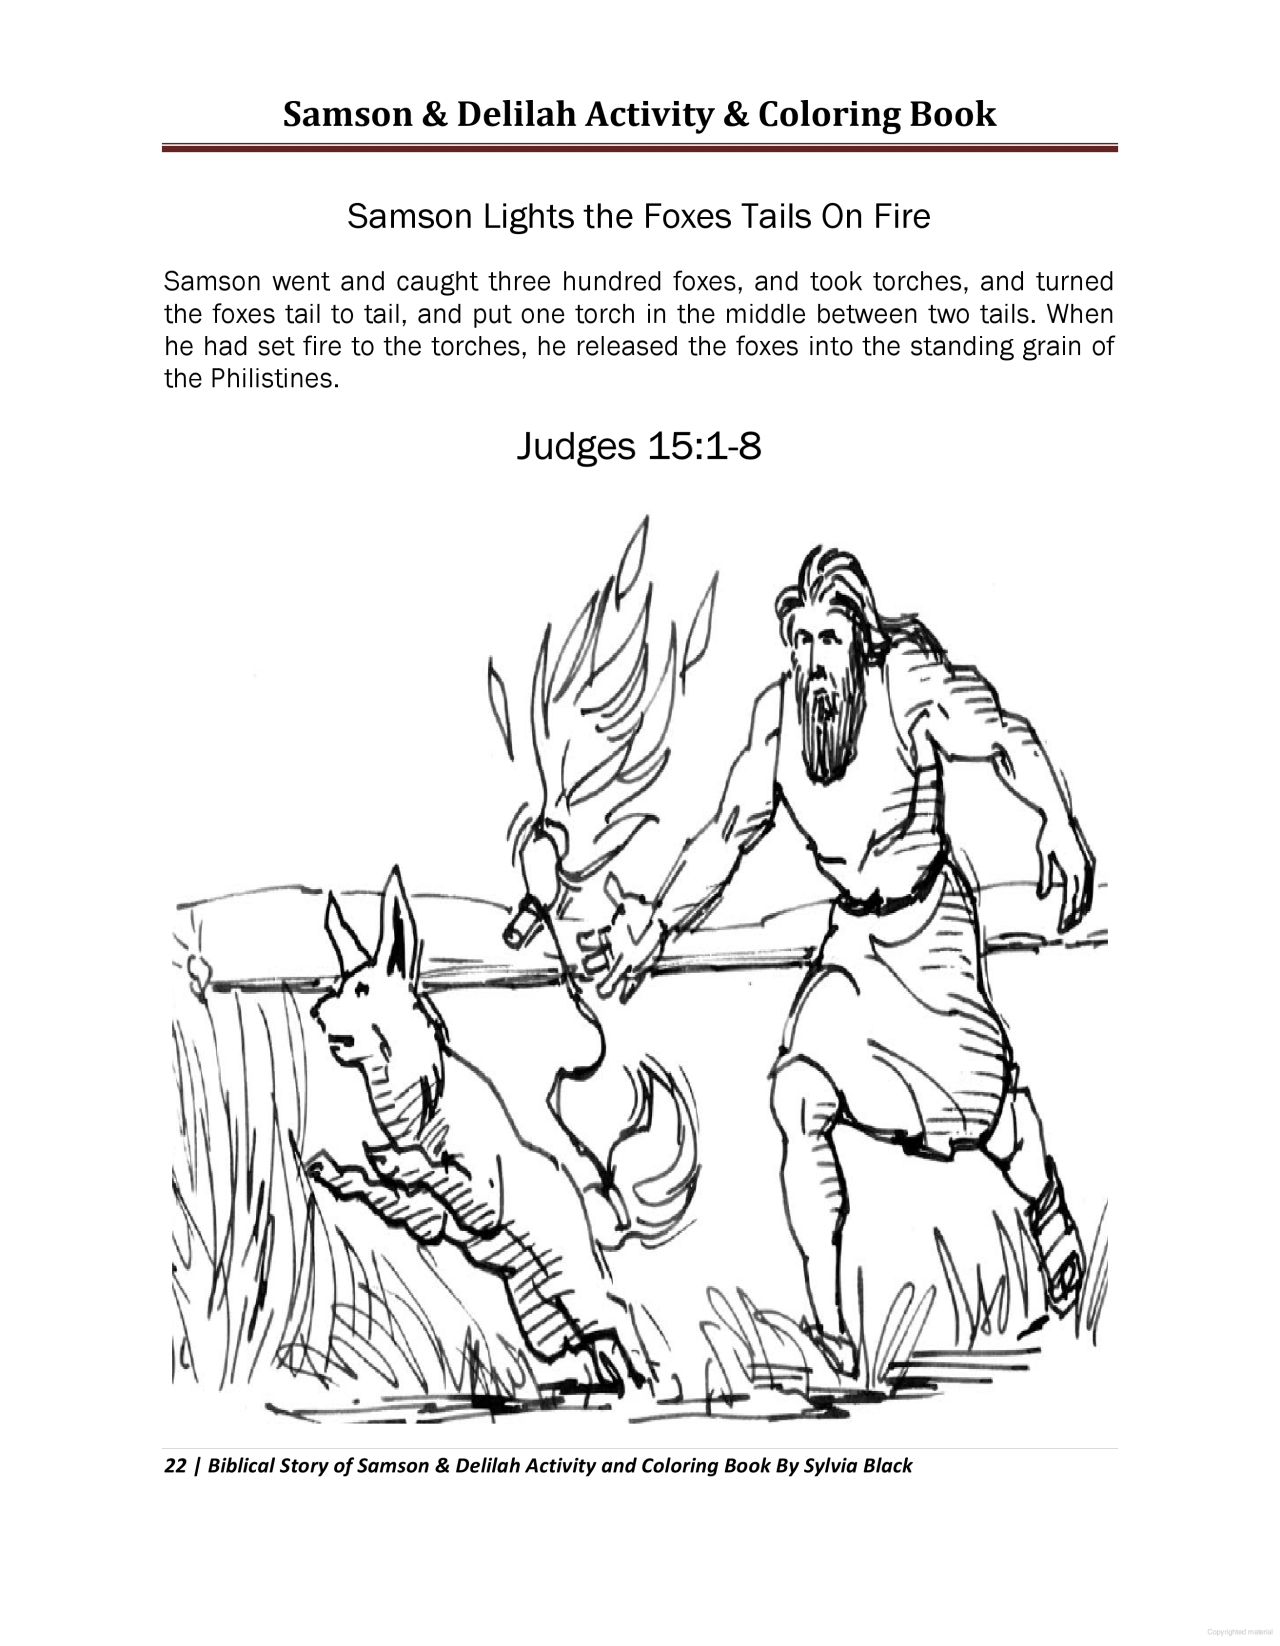 samson and delilah coloring pages 51 best bible samson images on pinterest samson craft delilah pages coloring and samson